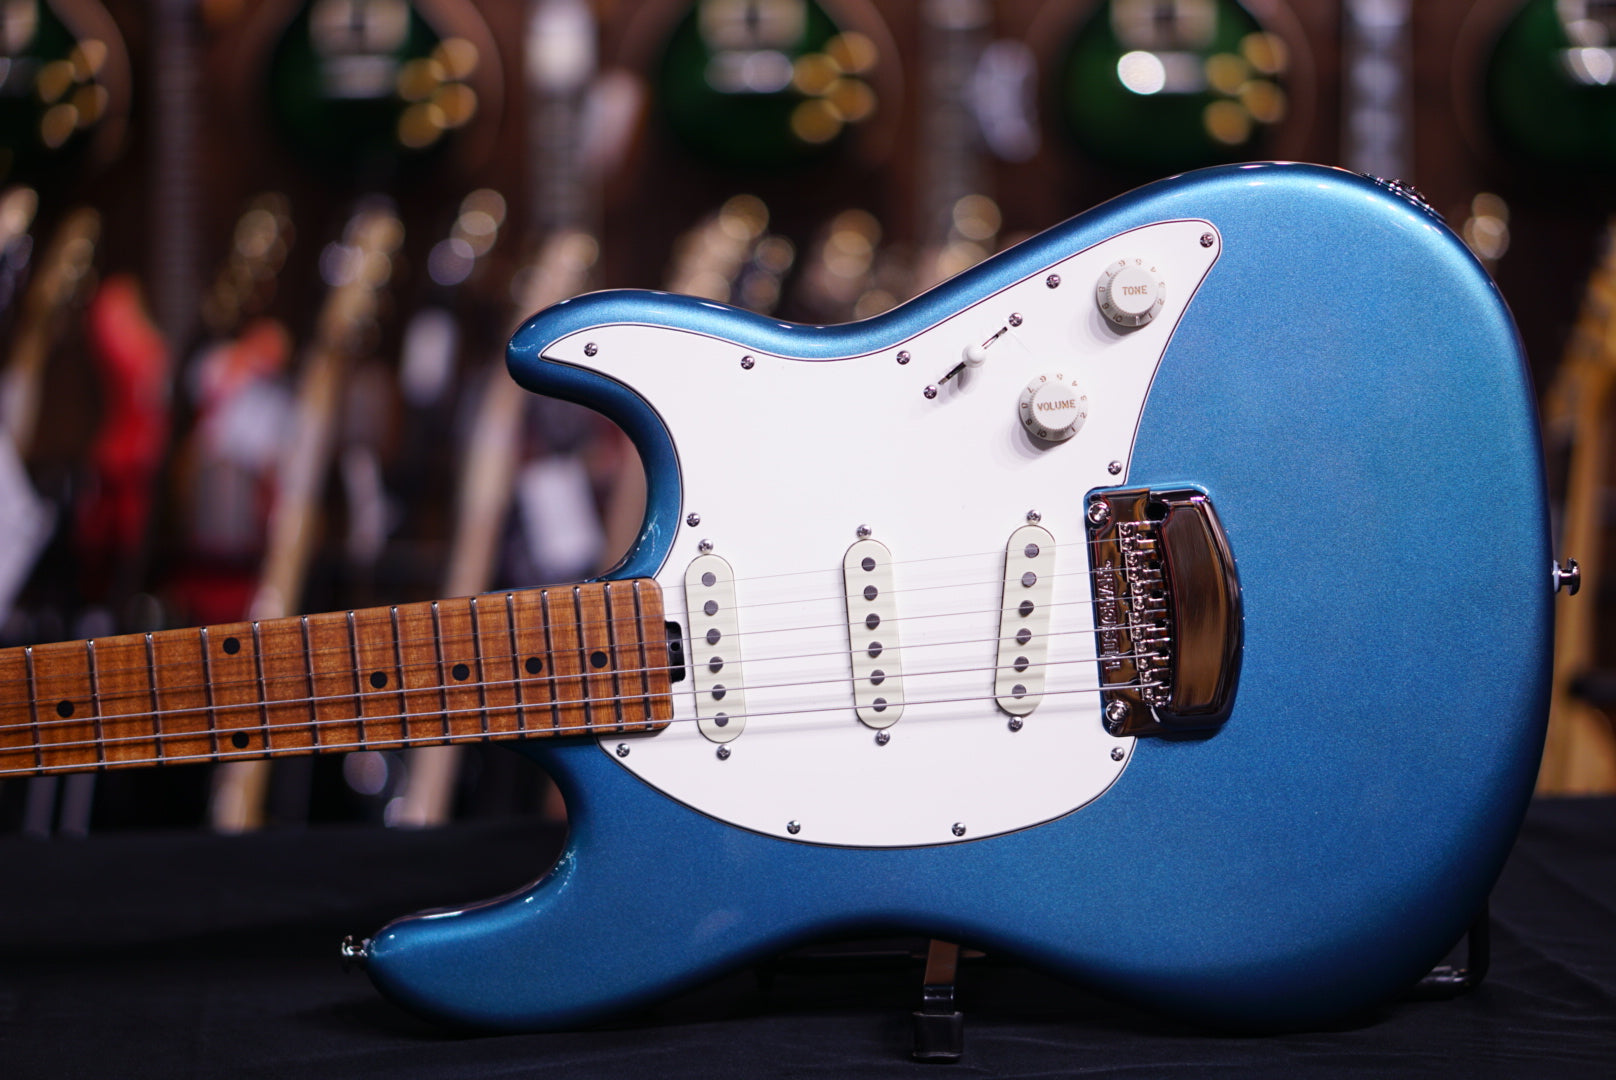 Music Man Cutlass Rs - Vintage Turquoise Roasted Maple G90311 Musicman - HIENDGUITAR.COM